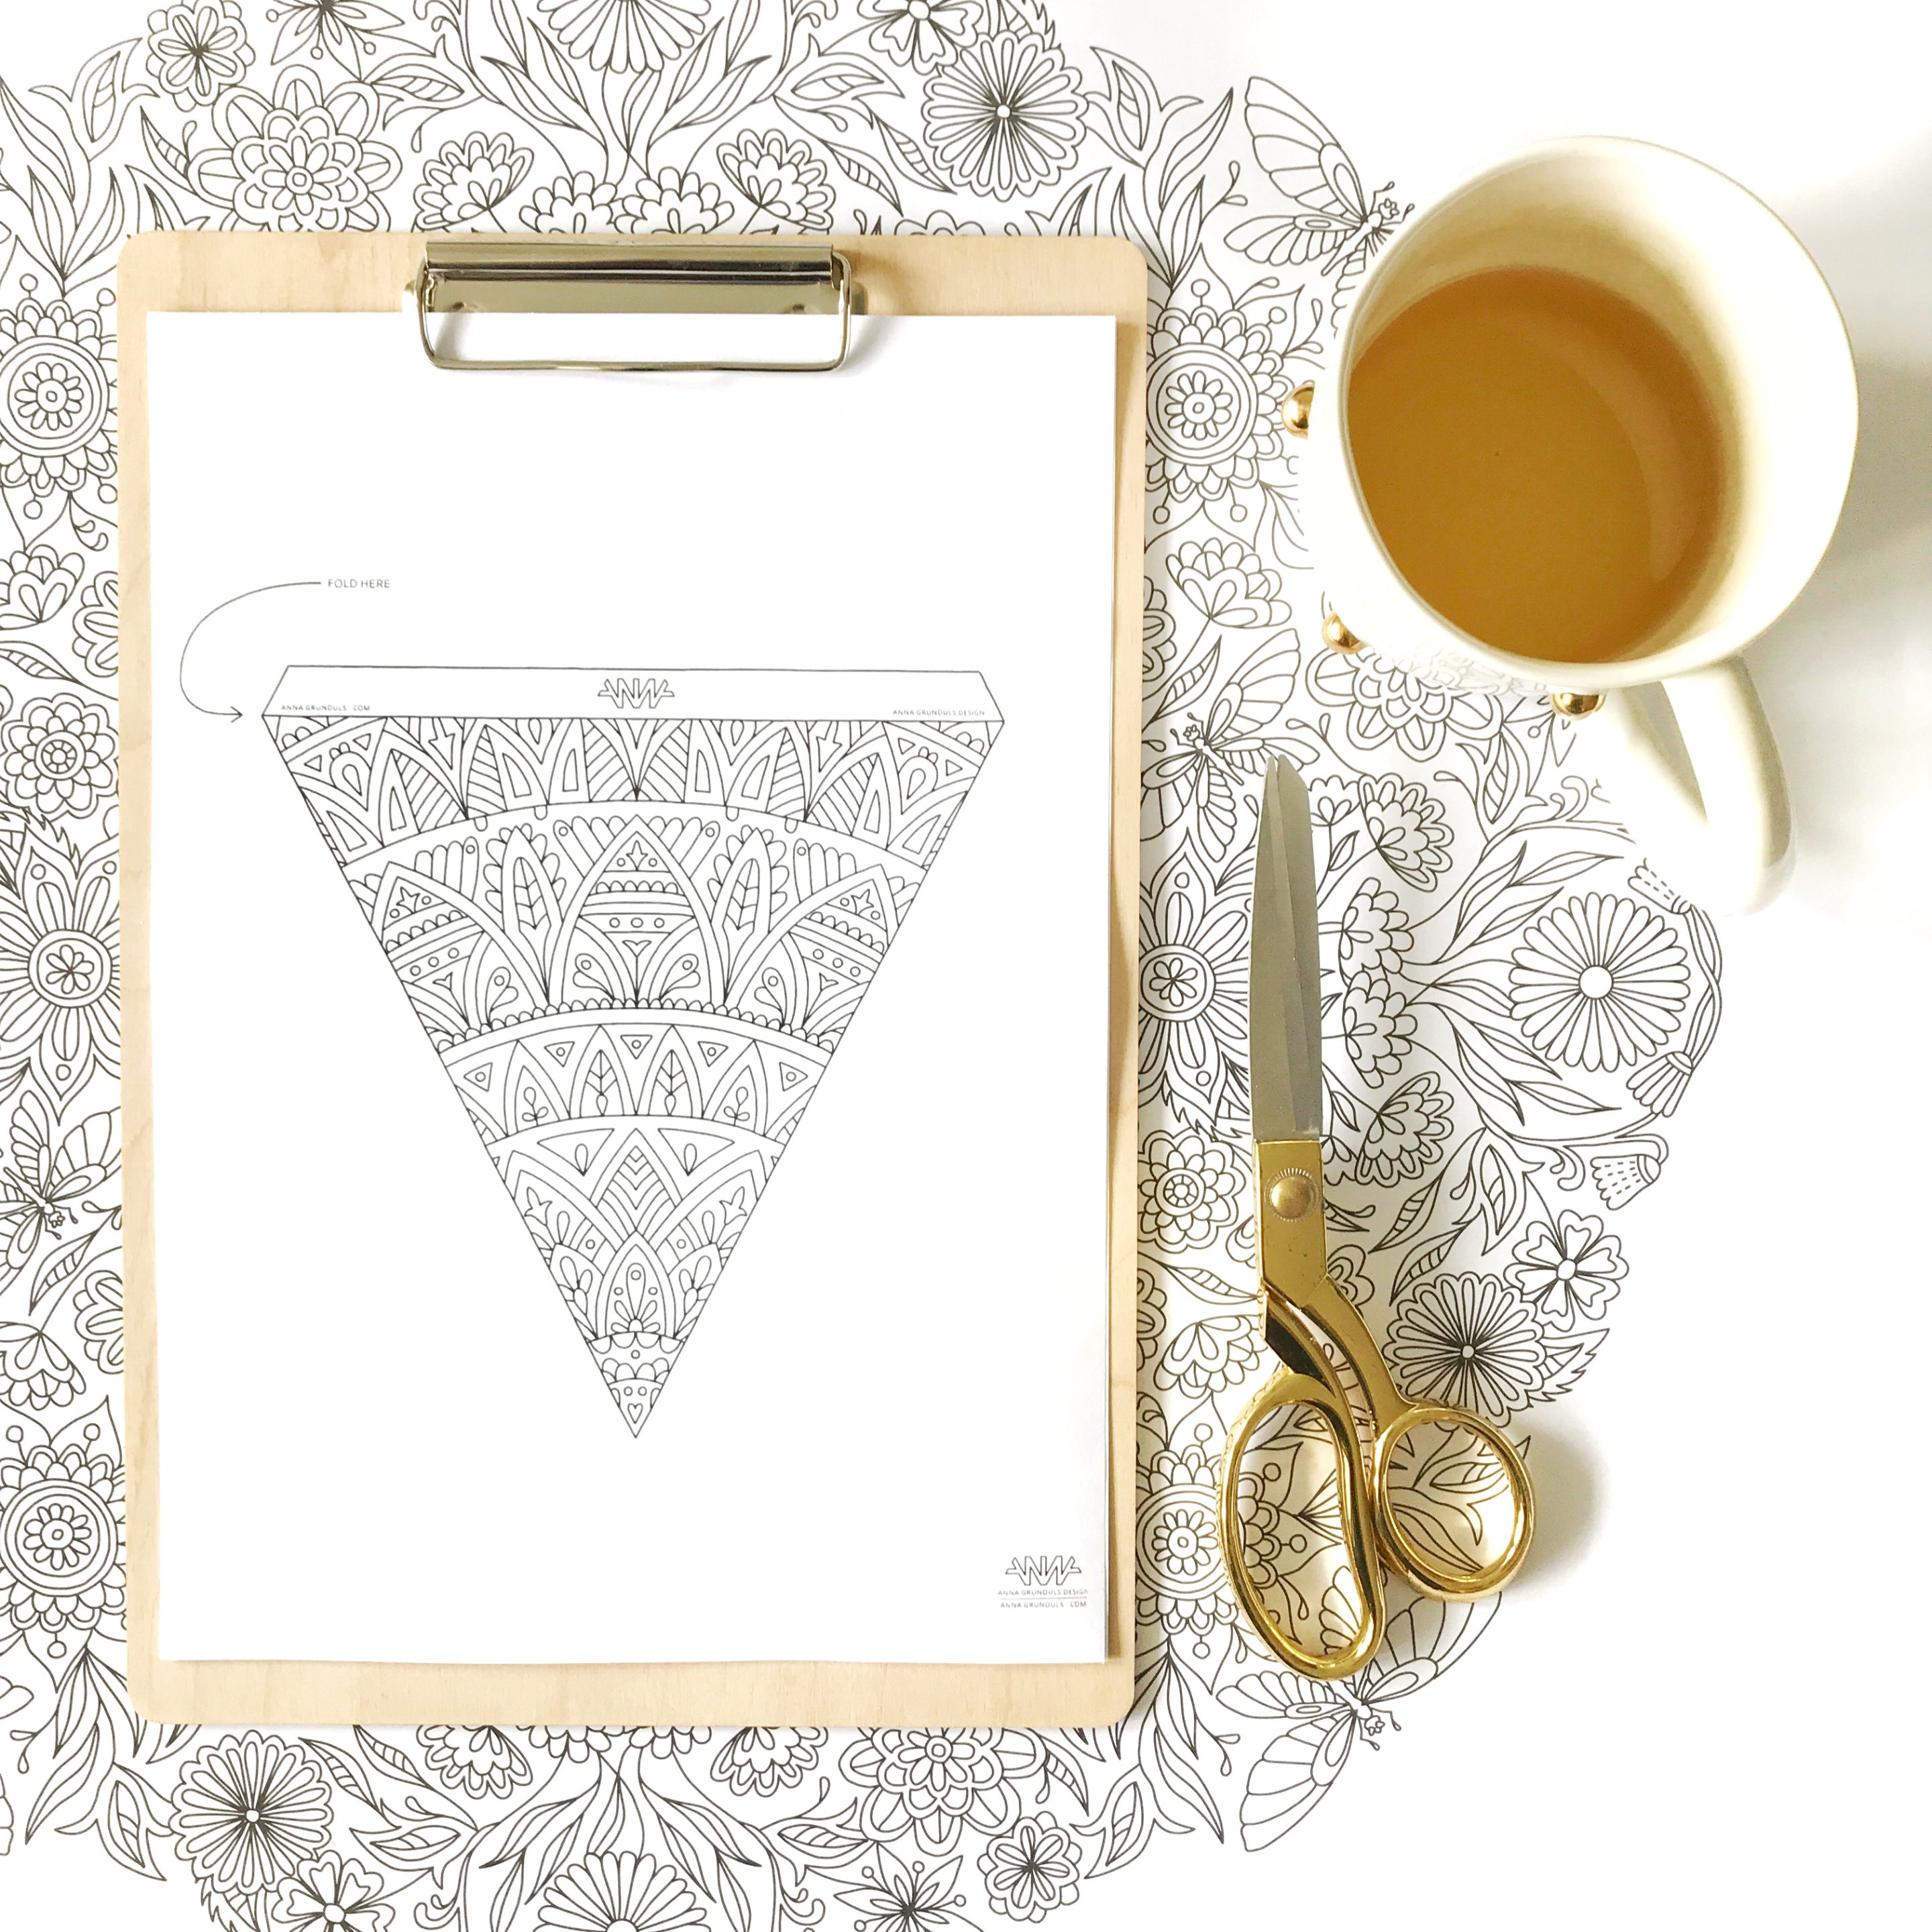 Mandala bunting flag for DIY project free printable